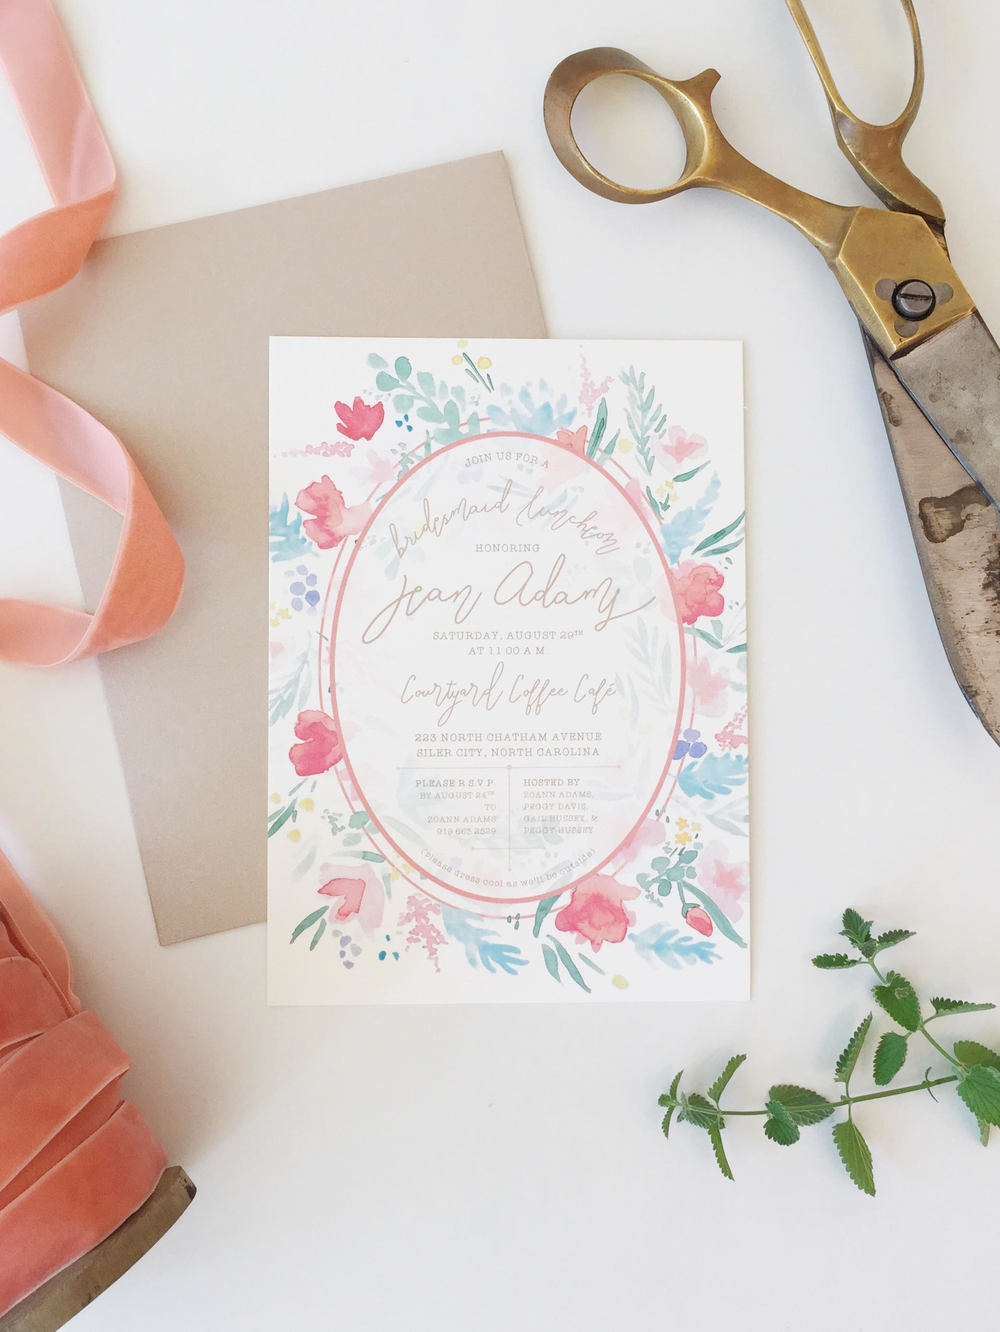 Sable and Gray | Watercolor Wreath Bridesmaid Luncheon Invitation